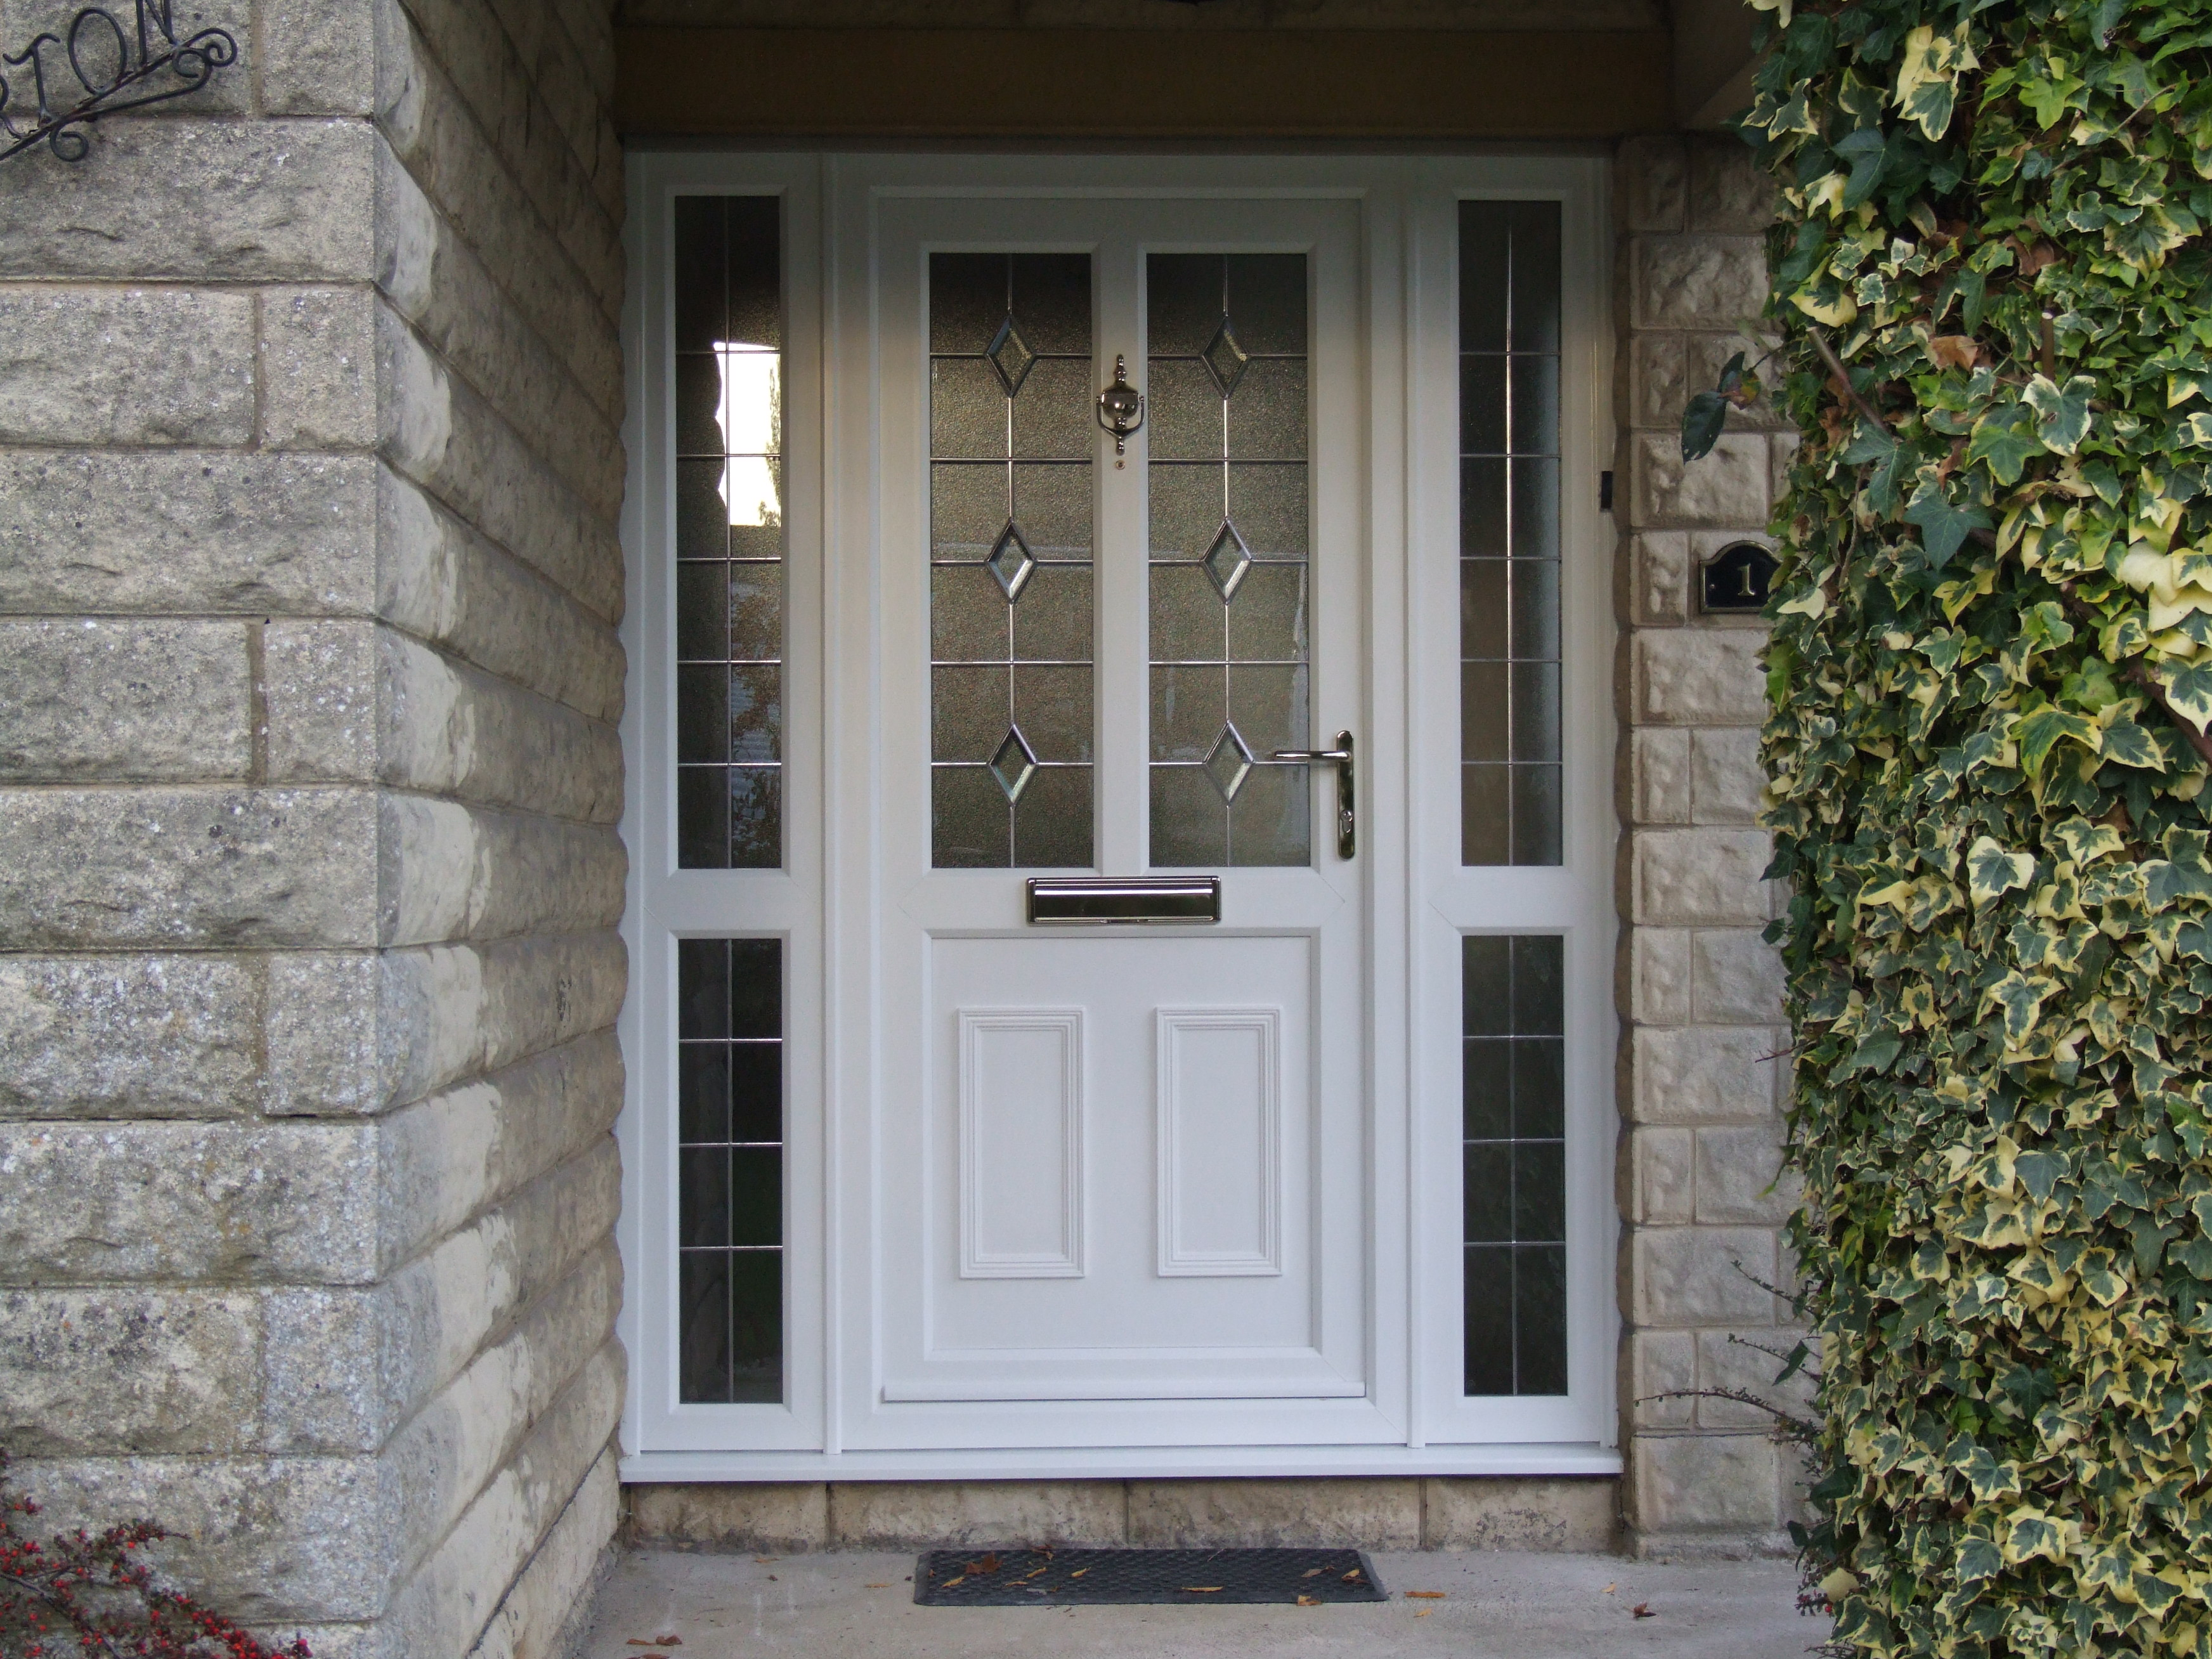 Swell L F Replacement Windows Doors Doors Gallery Largest Home Design Picture Inspirations Pitcheantrous